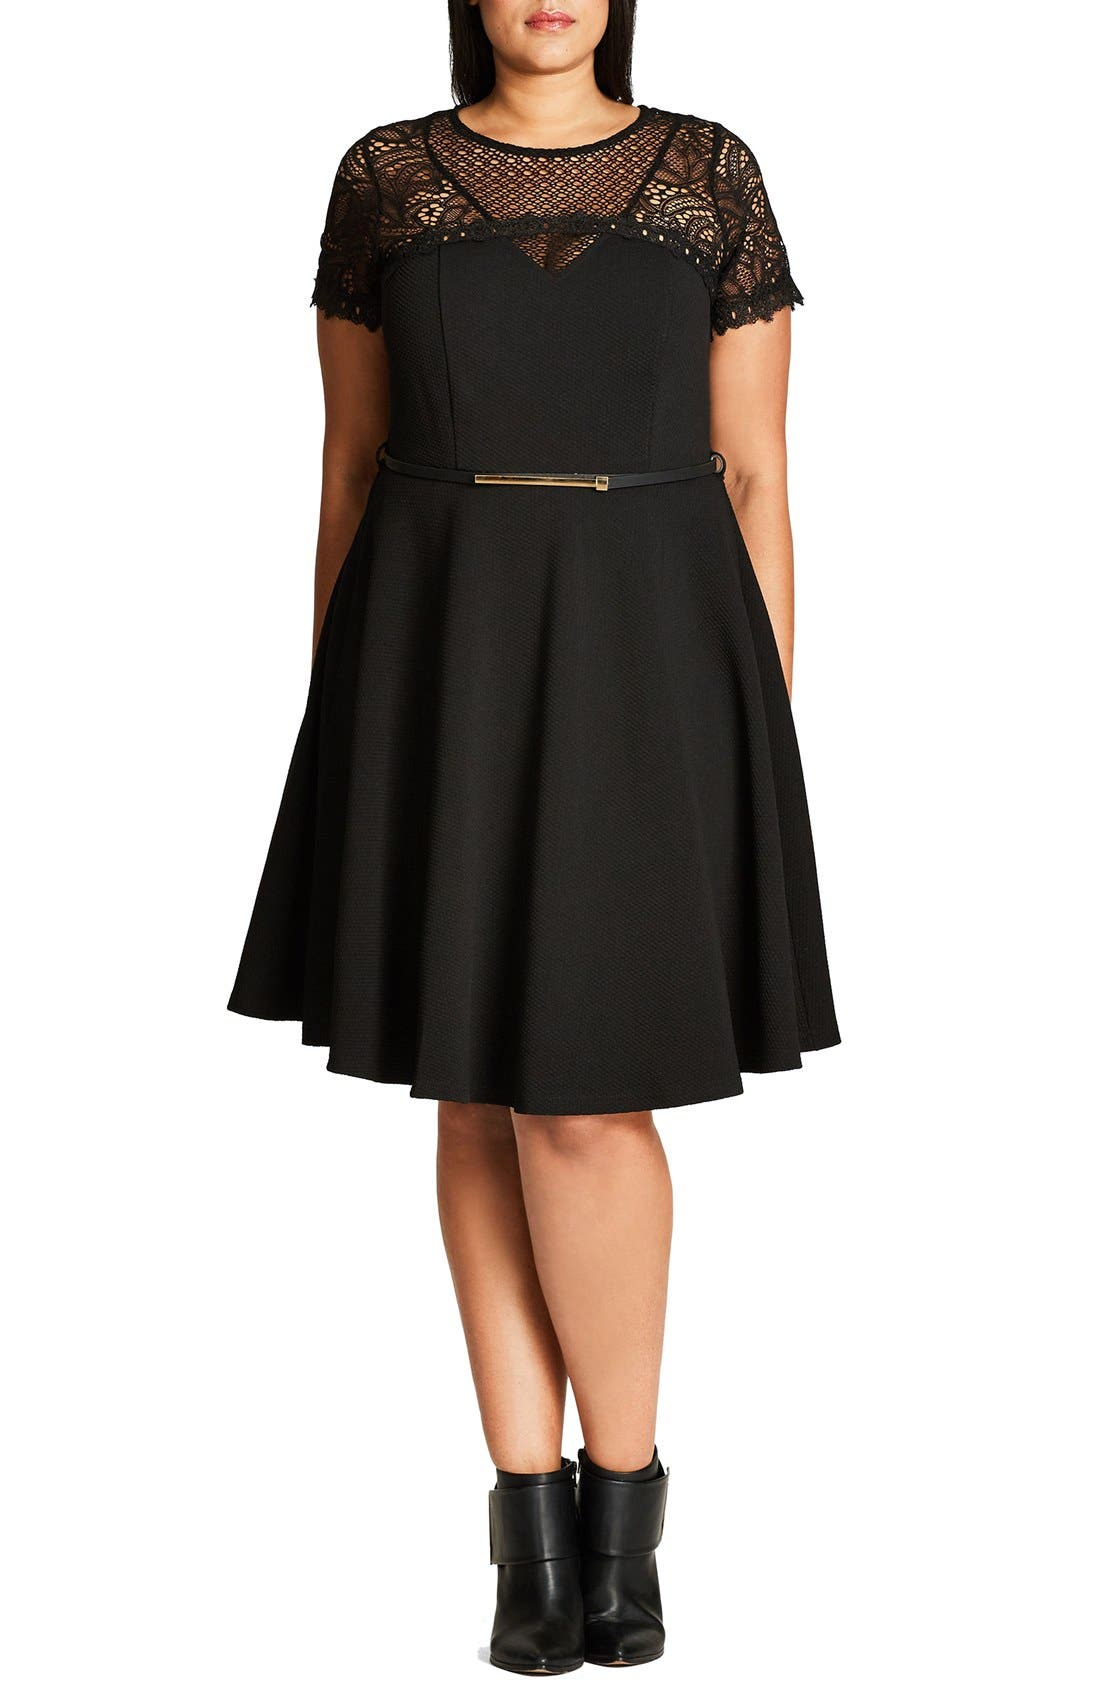 Alternate Image 1 Selected - City Chic Lace Fever Dress (Plus Size)